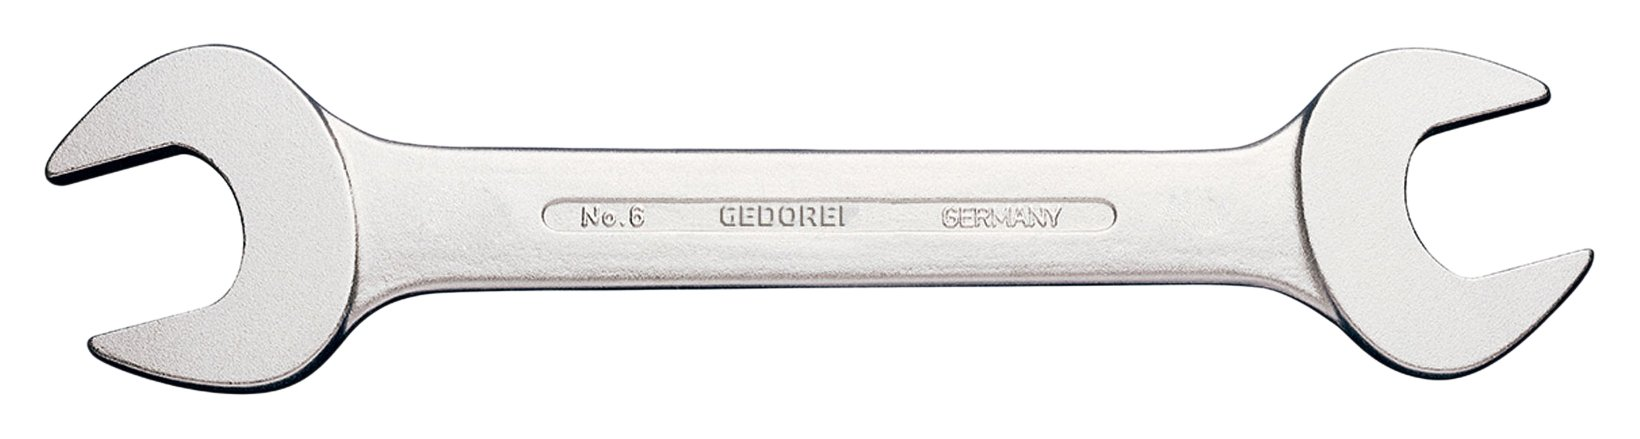 GEDORE 6 1.5/16x1.1/2AF Double Open Ended Spanner 1.5/16x1.1/2'' by Gedore